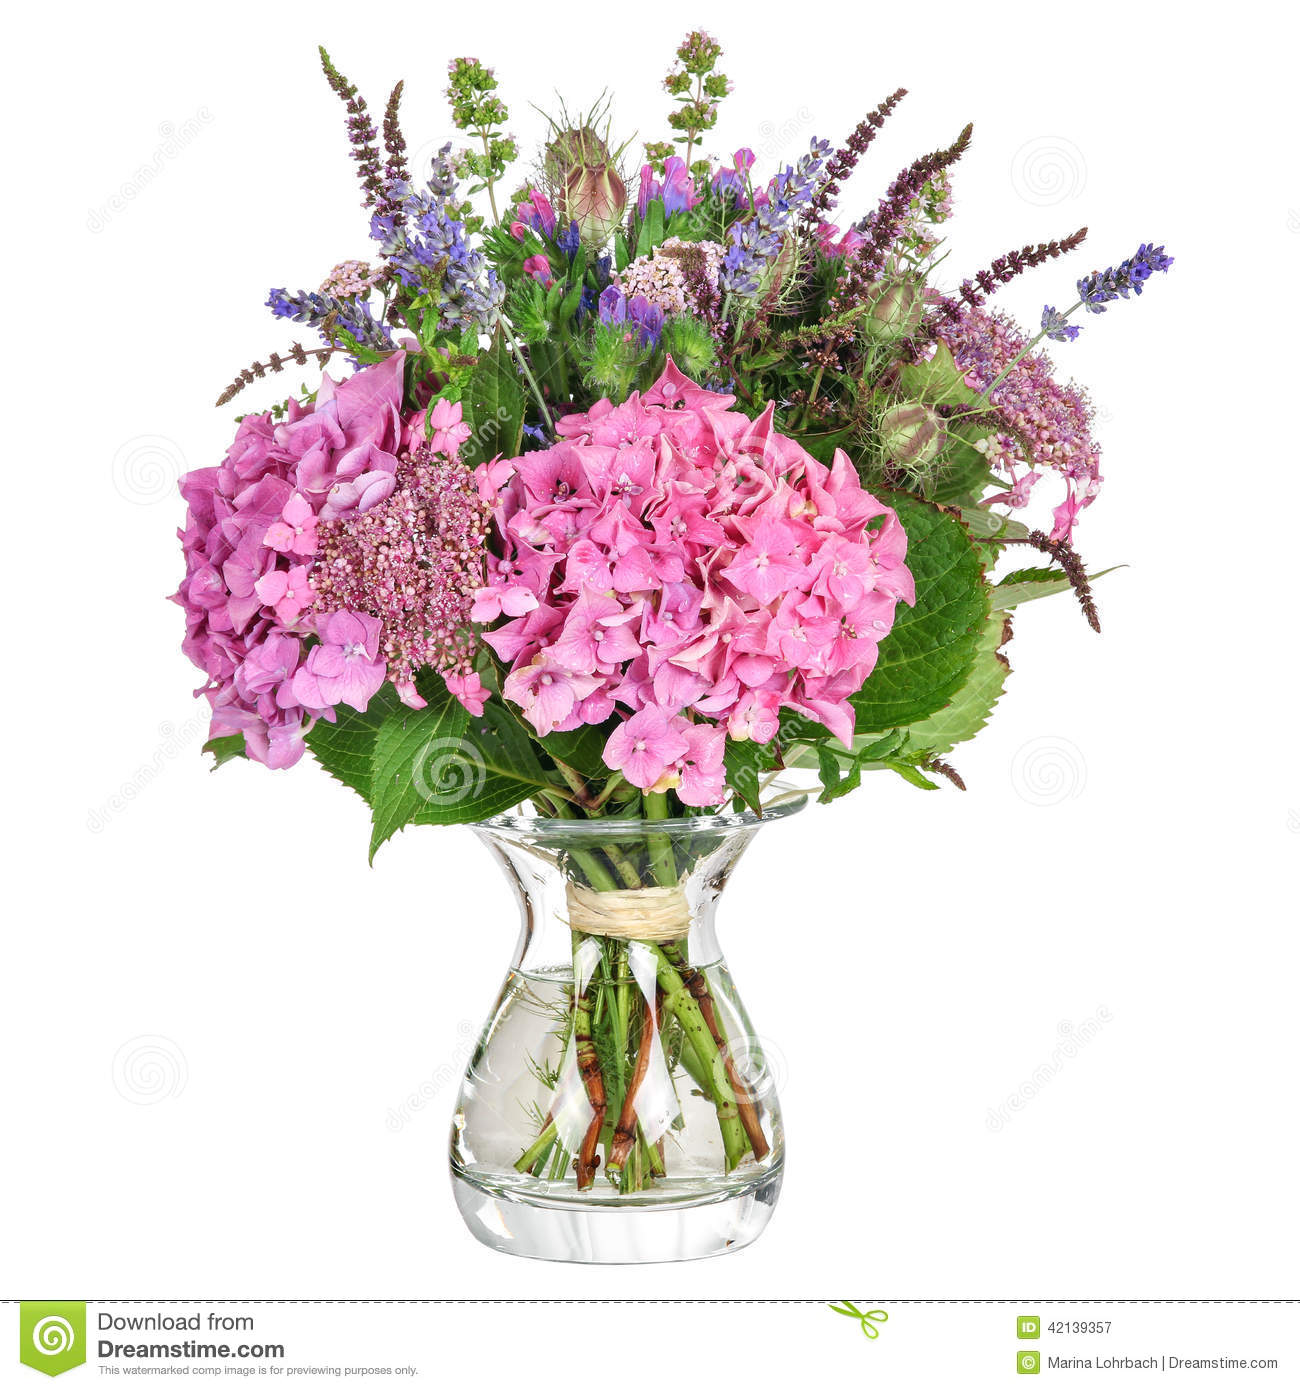 Mazzo Di Fiori Con Ortensie.Bunch Of Flowers With Hydrangea And Herbs Stock Image Image Of